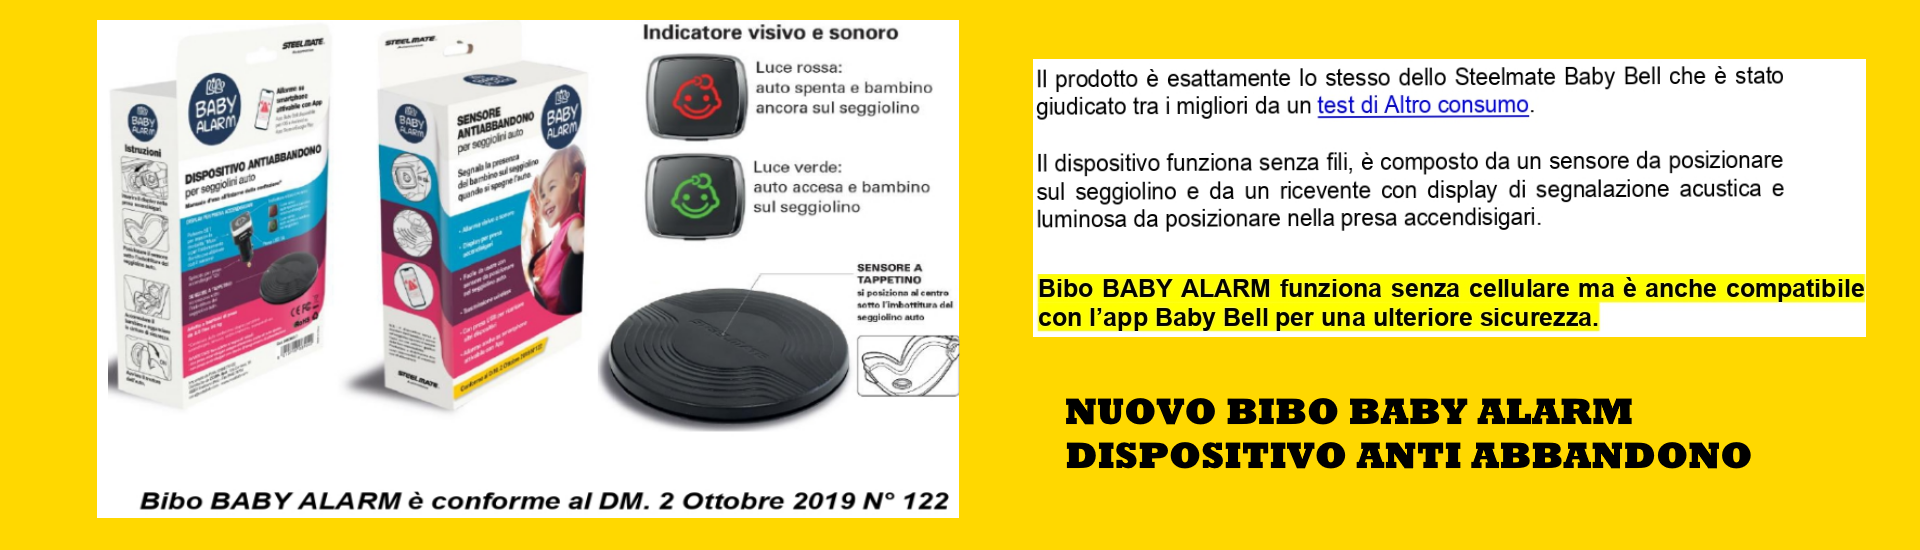 Dispositivo baby anti abbandono